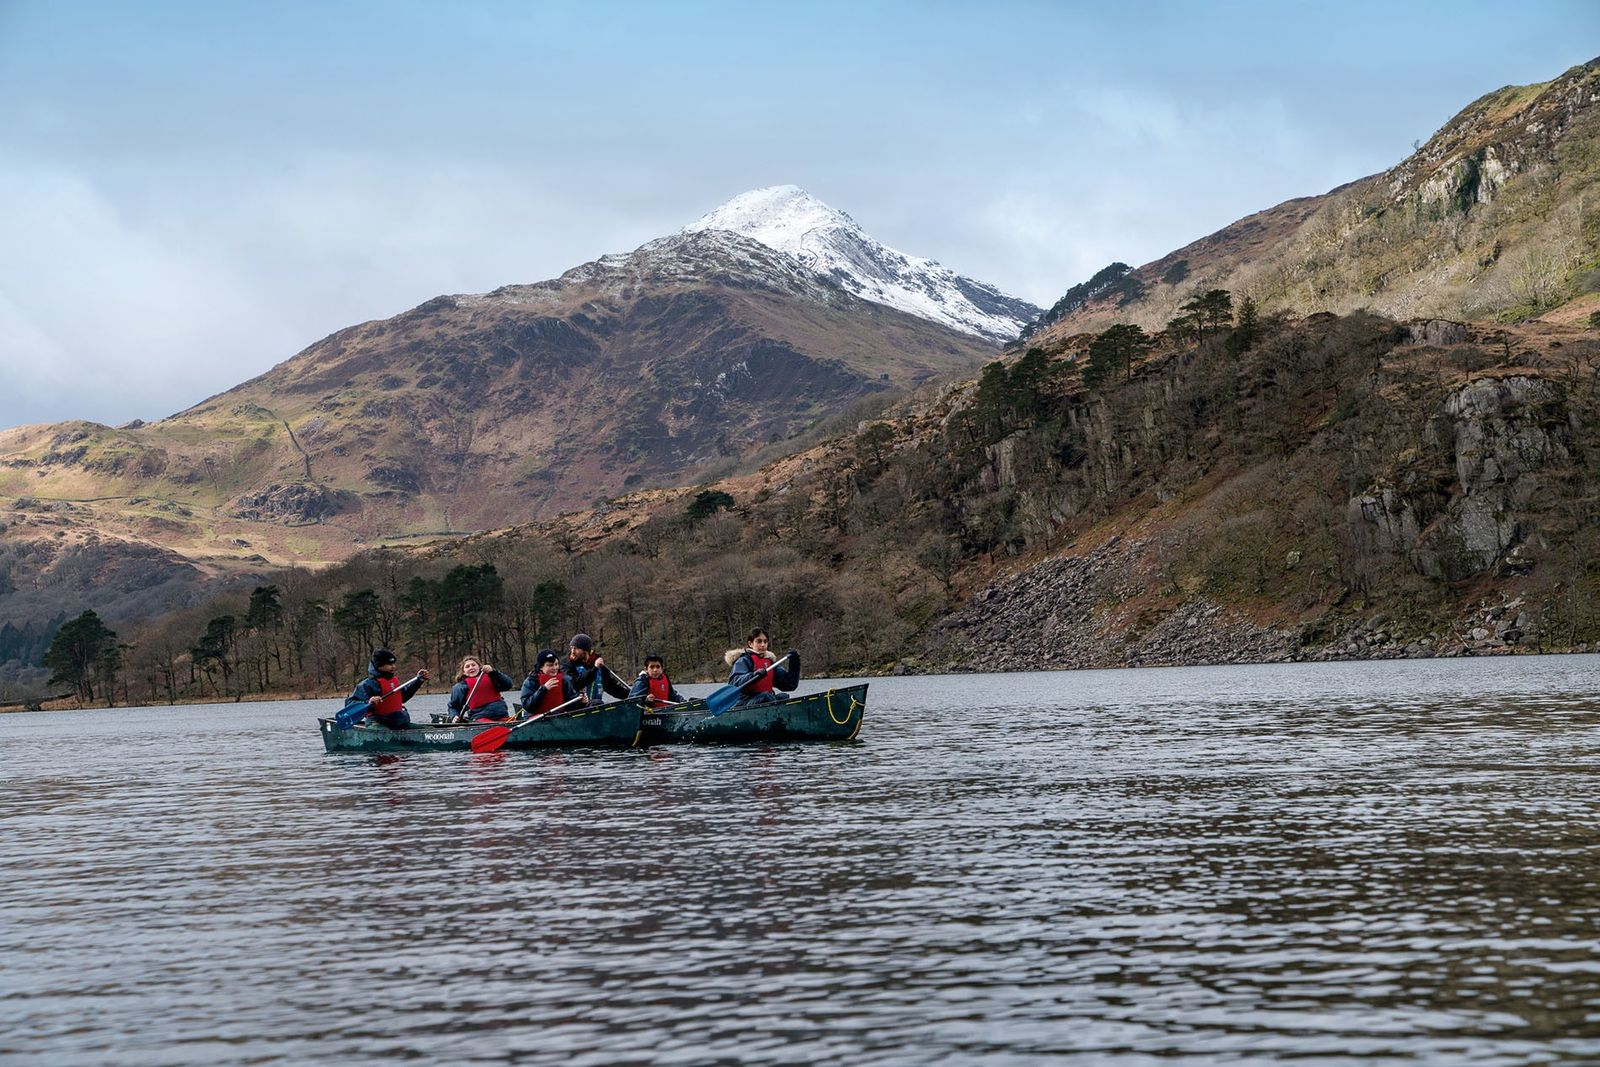 Learning through nature: the new diversity project fronted by The North Face